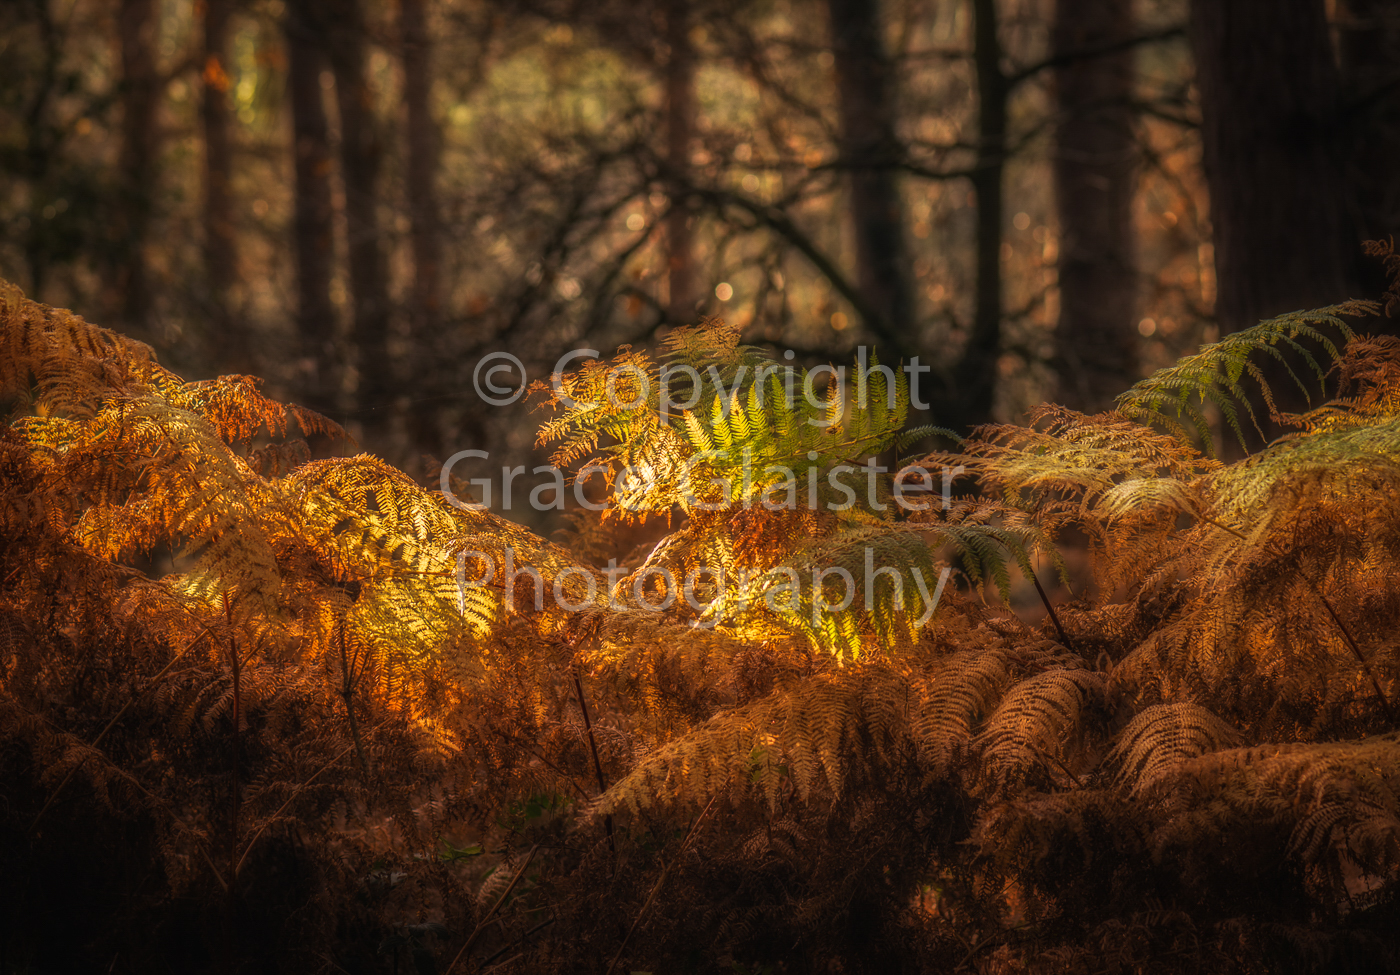 Last of the green by Grace Glaister